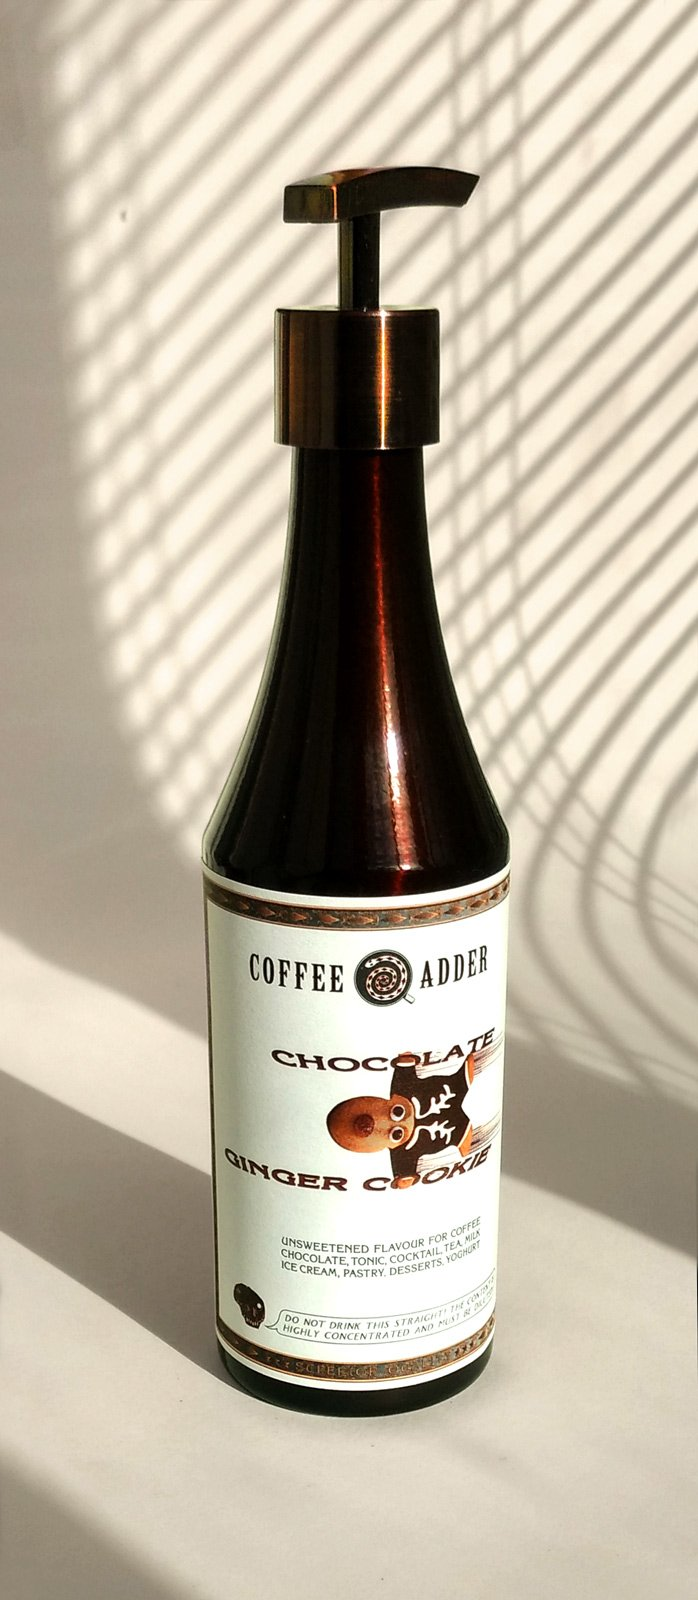 Chocolate Ginger Cookie Syrup